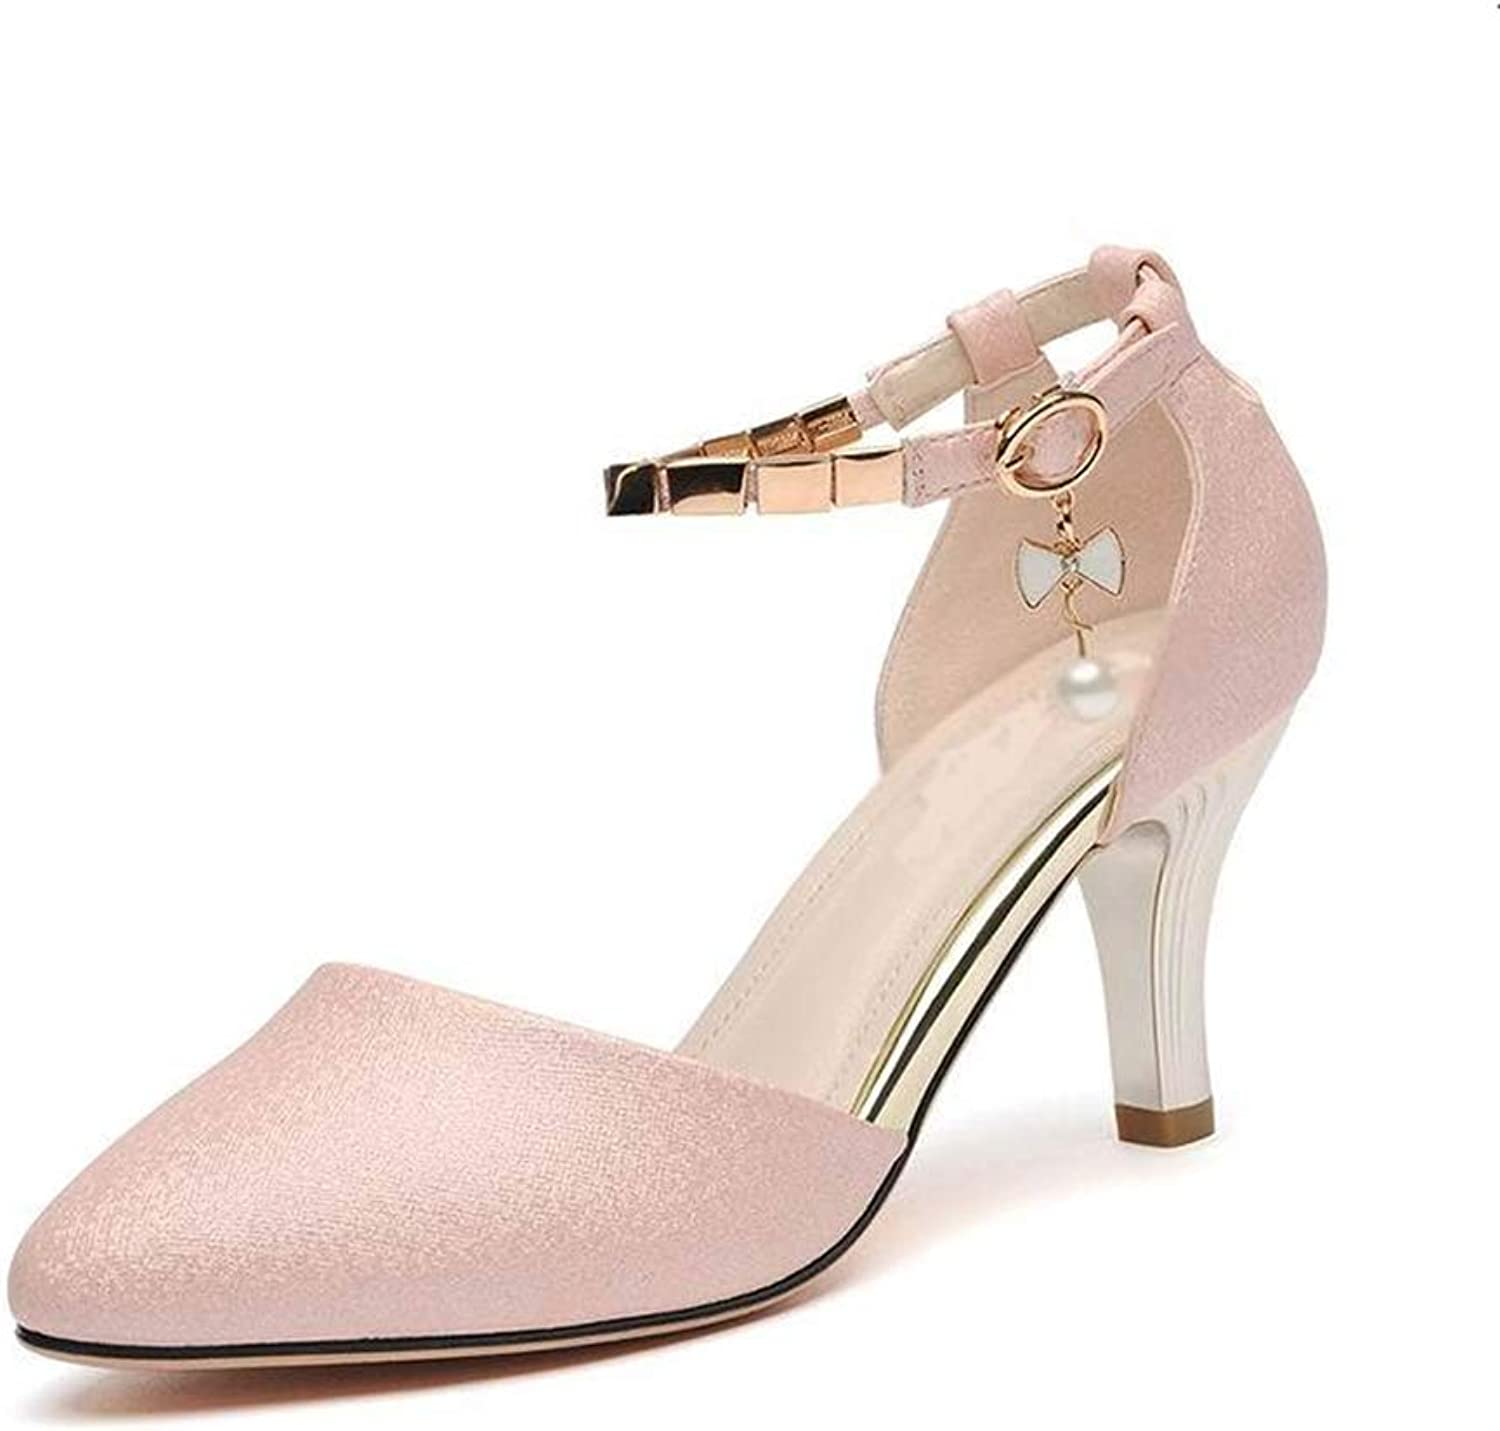 CHENGLing Women's Lace Up Tie Up Chunky Wraped Block High Heel Dress Pump